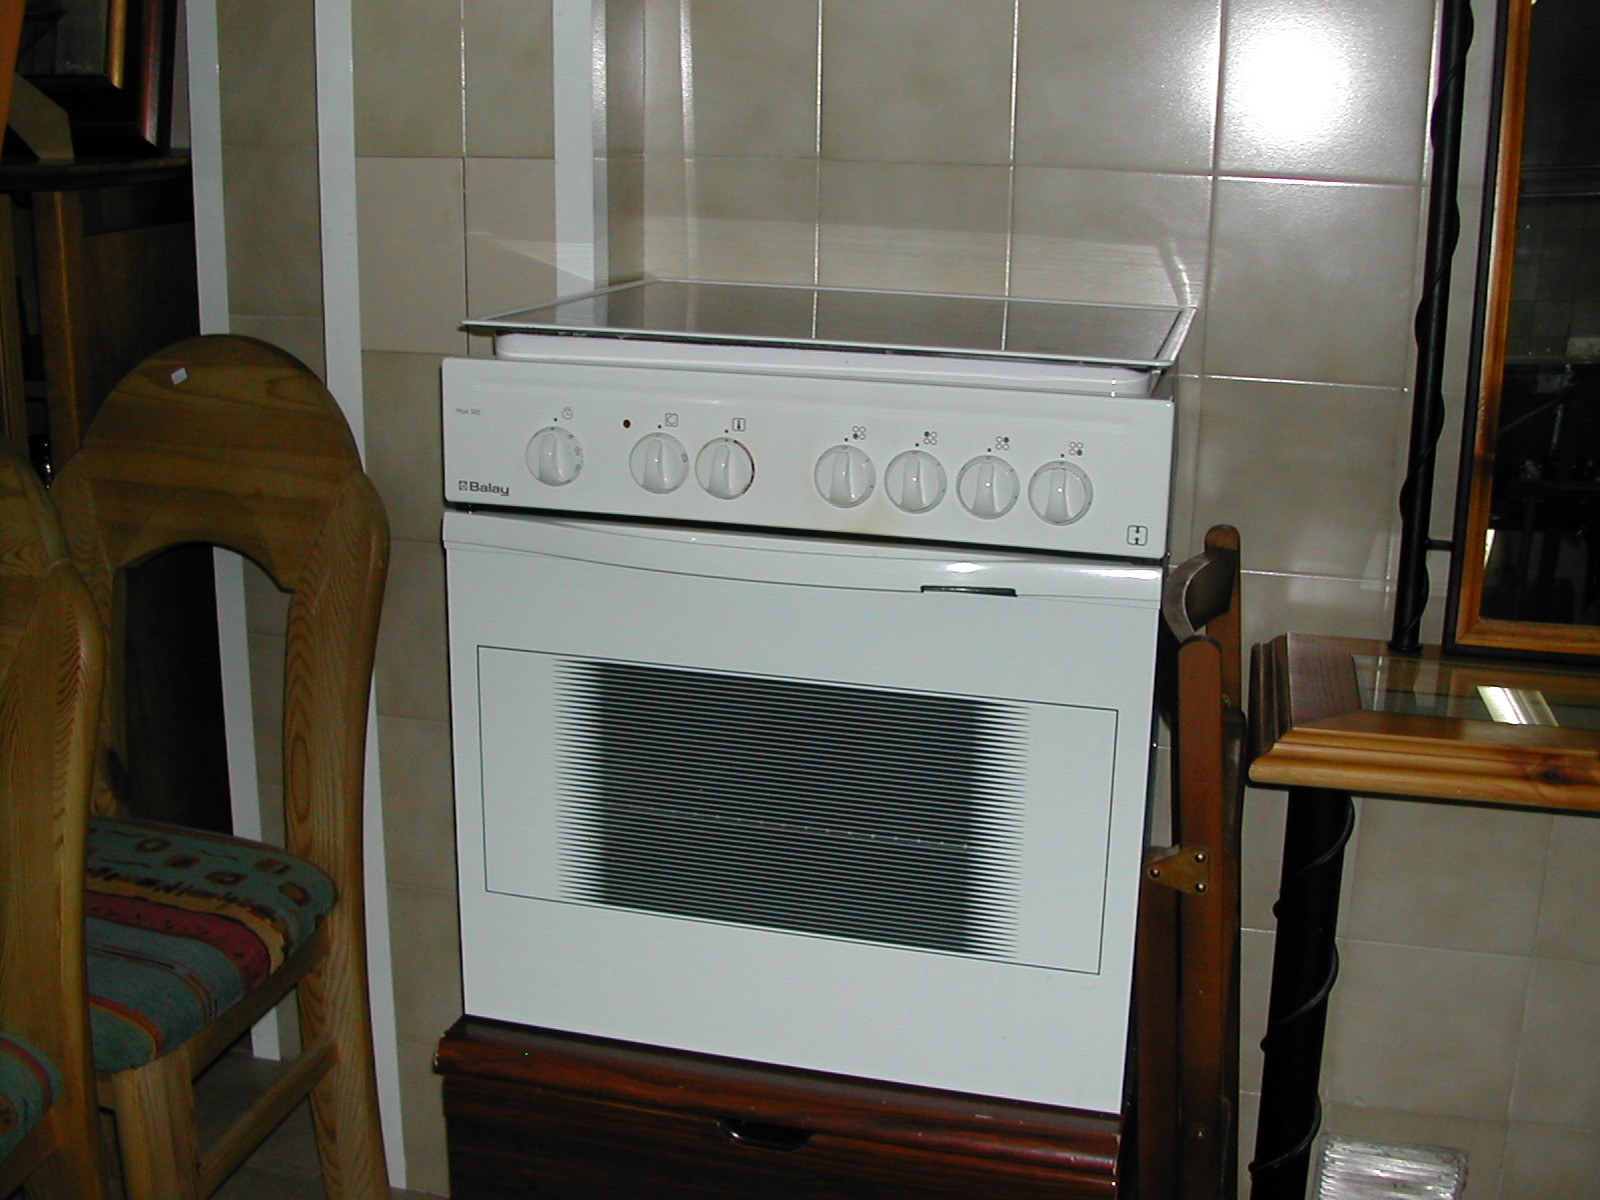 Beko cooker wiring diagram the best wiring diagram 2017 balay electric oven and hob nerja household centre second hand cheapraybanclubmaster Gallery